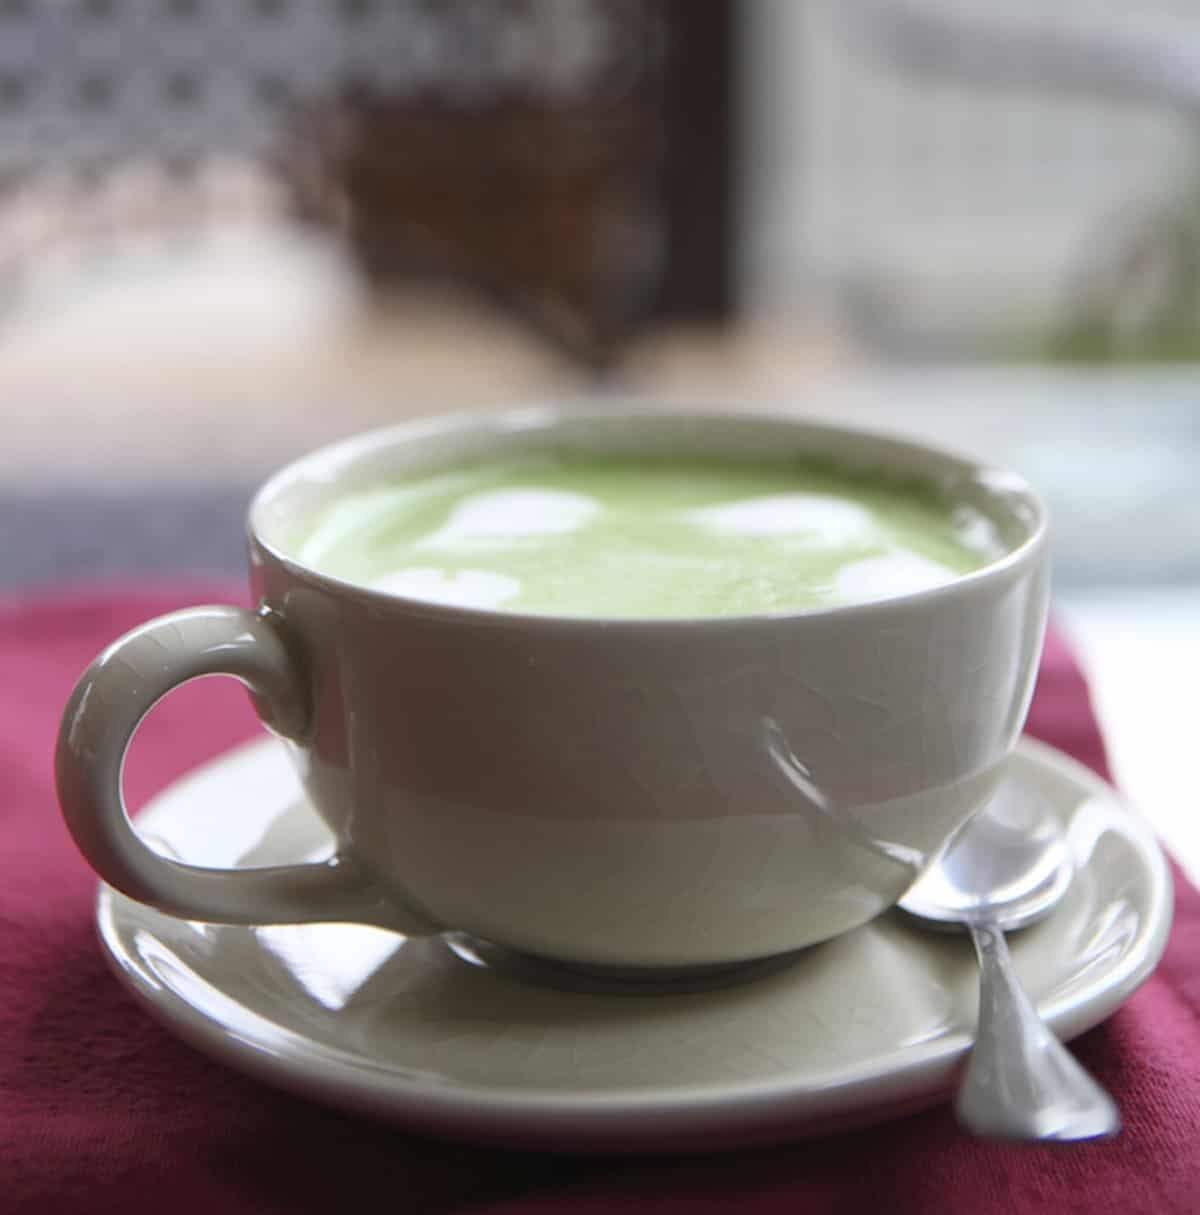 espresso matcha latte in white cup and saucer to quit coffee